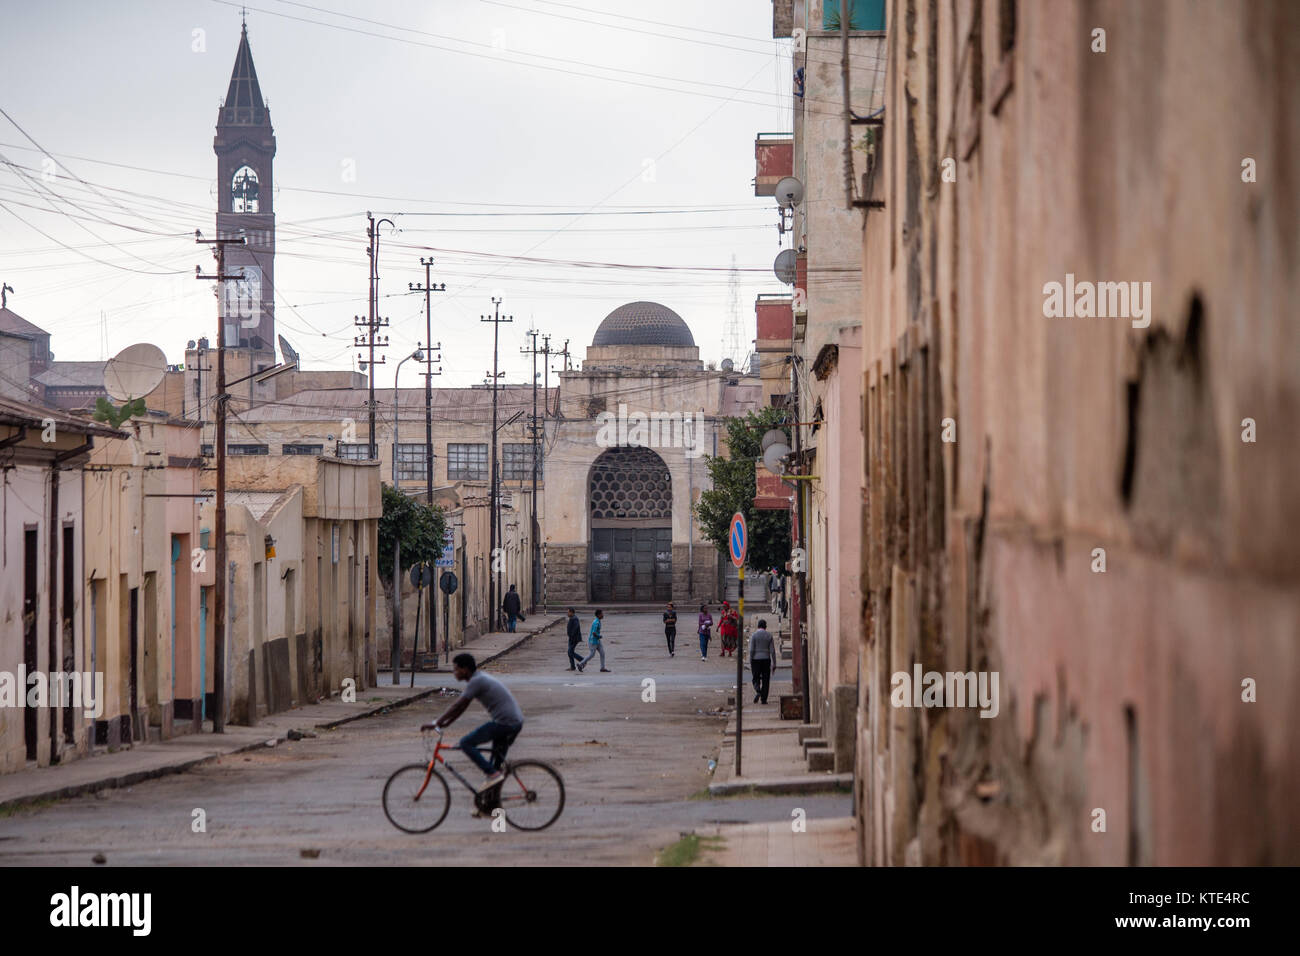 A man on a bicycle cross a street in the city of Asmara, Eritrea on the Horn of Africa. - Stock Image